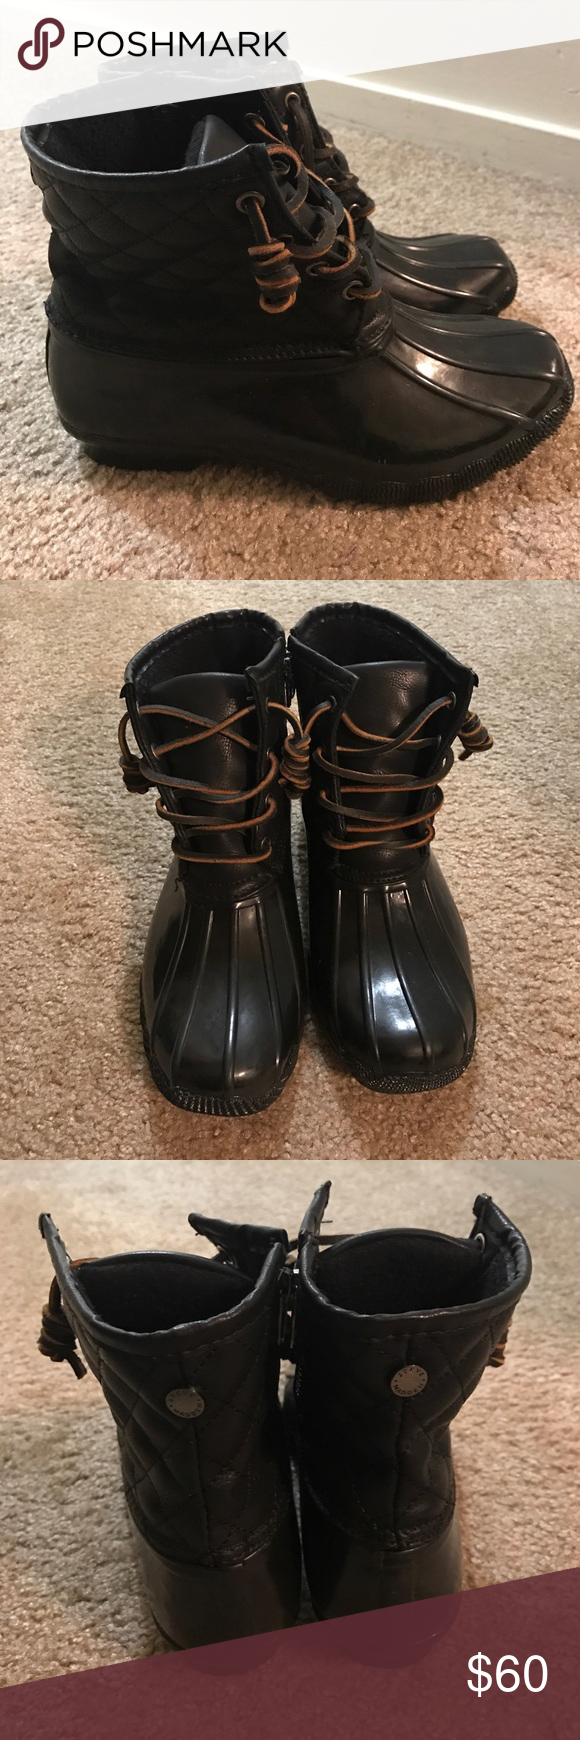 Steve Madden Tillis Duck Booties Size 6 If you are a true to size 6.5, these will fit. Gently Worn Once. Steve Madden Shoes Winter & Rain Boots